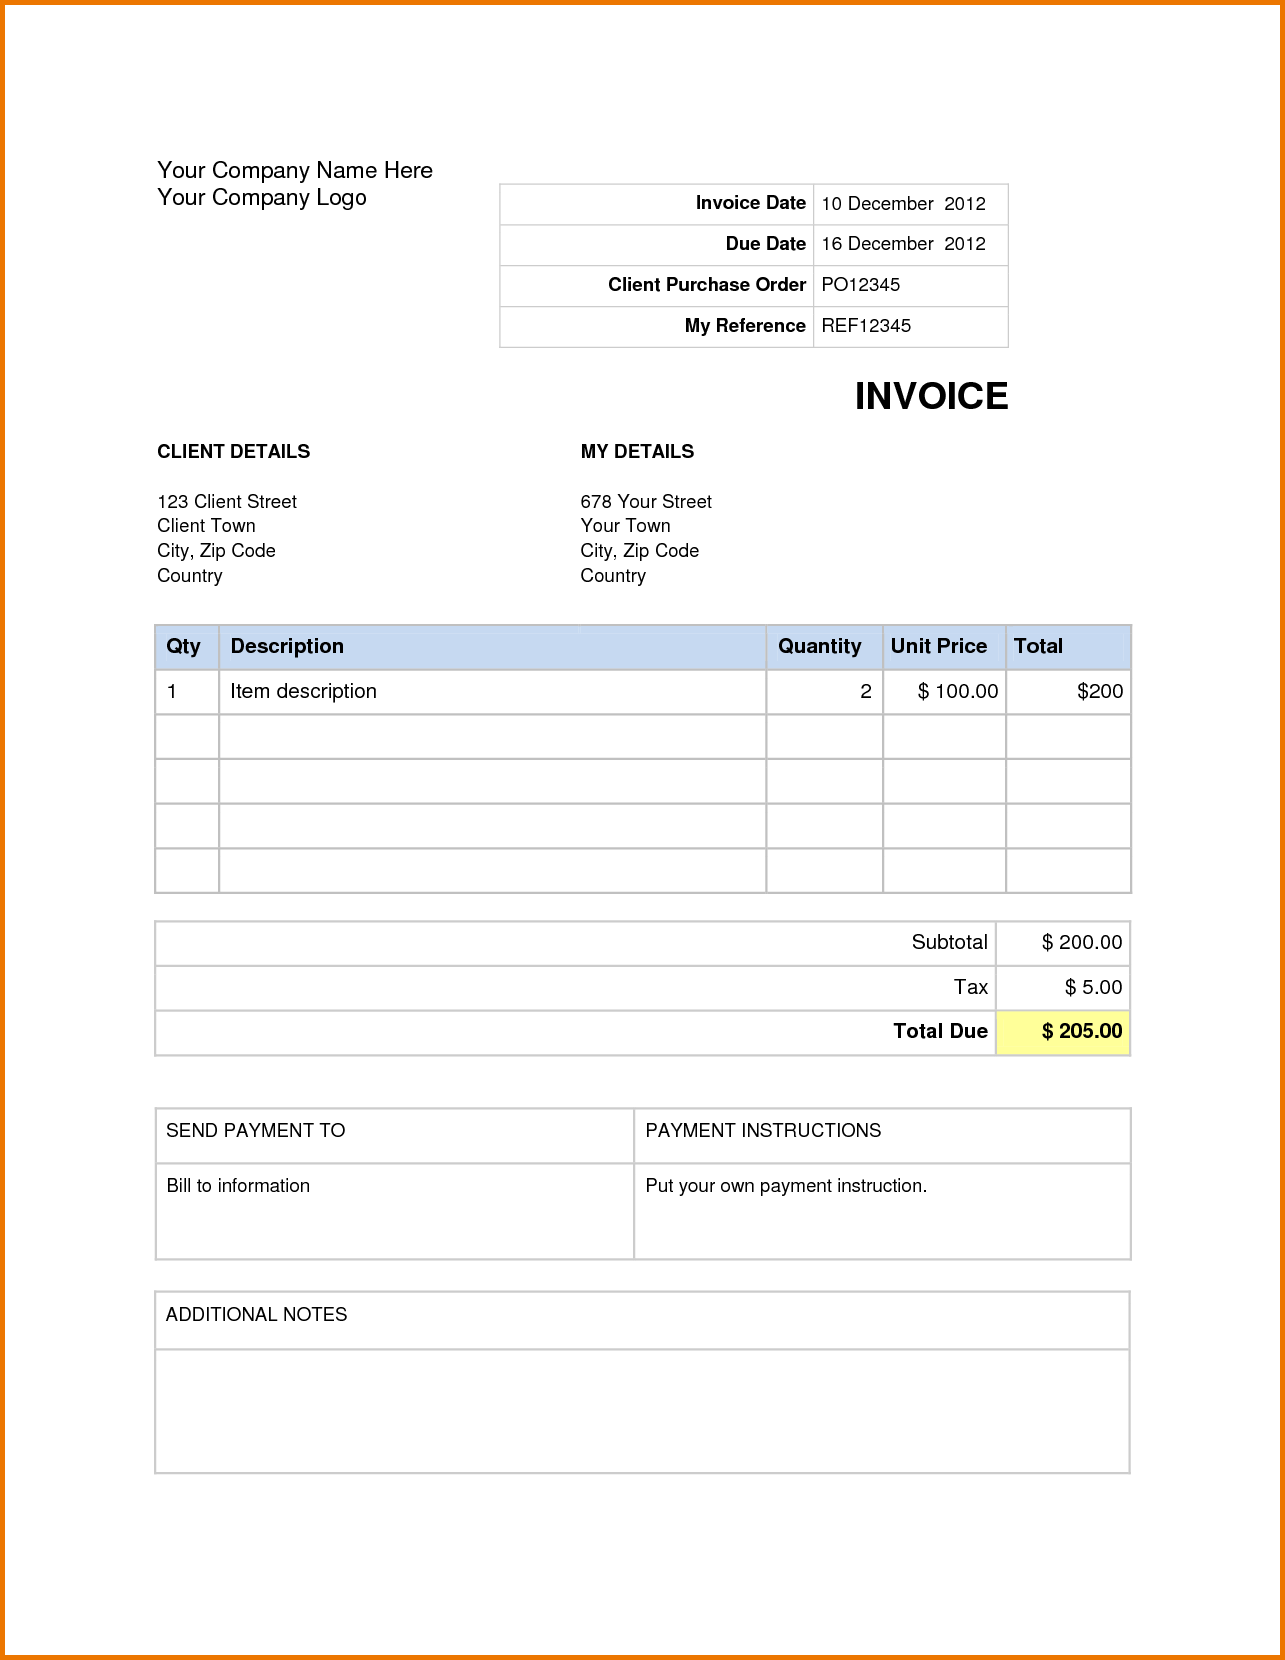 Invoice Template Microsoft Word 2007 Invoice Template Microsoft Word Microsoft Spreadsheet Template Spreadsheet Templates for Busines Microsoft Spreadsheet Template Spreadsheet Templates for Busines Invoice Template Microsoft Word 2007